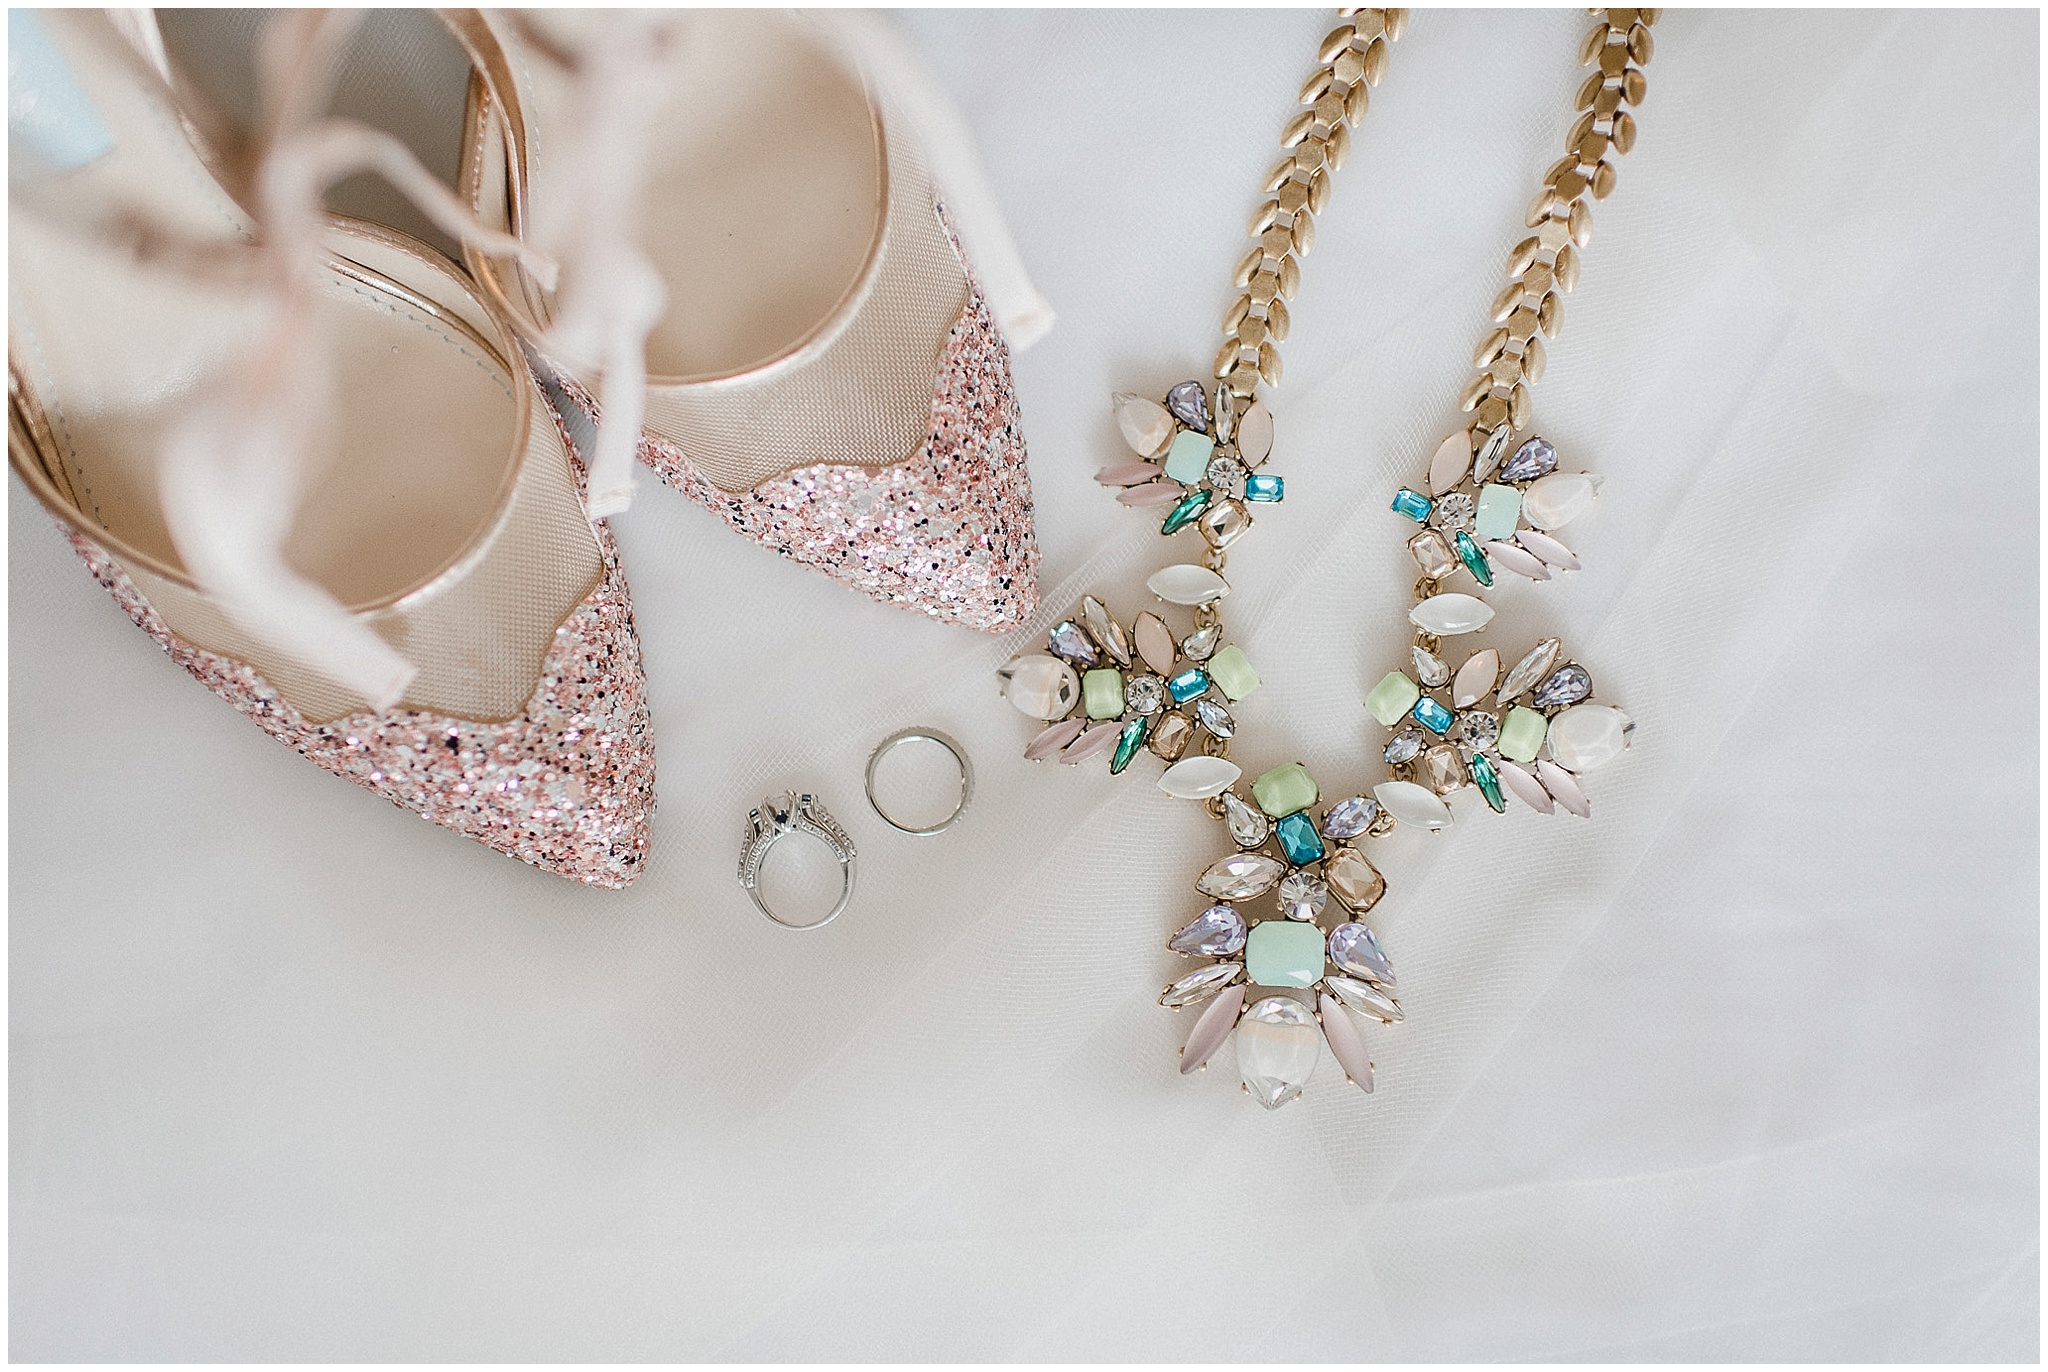 Bridal Details: Stella & Dot necklace and Betsey Johnson heels photographed by Jenn Kavanagh Photography